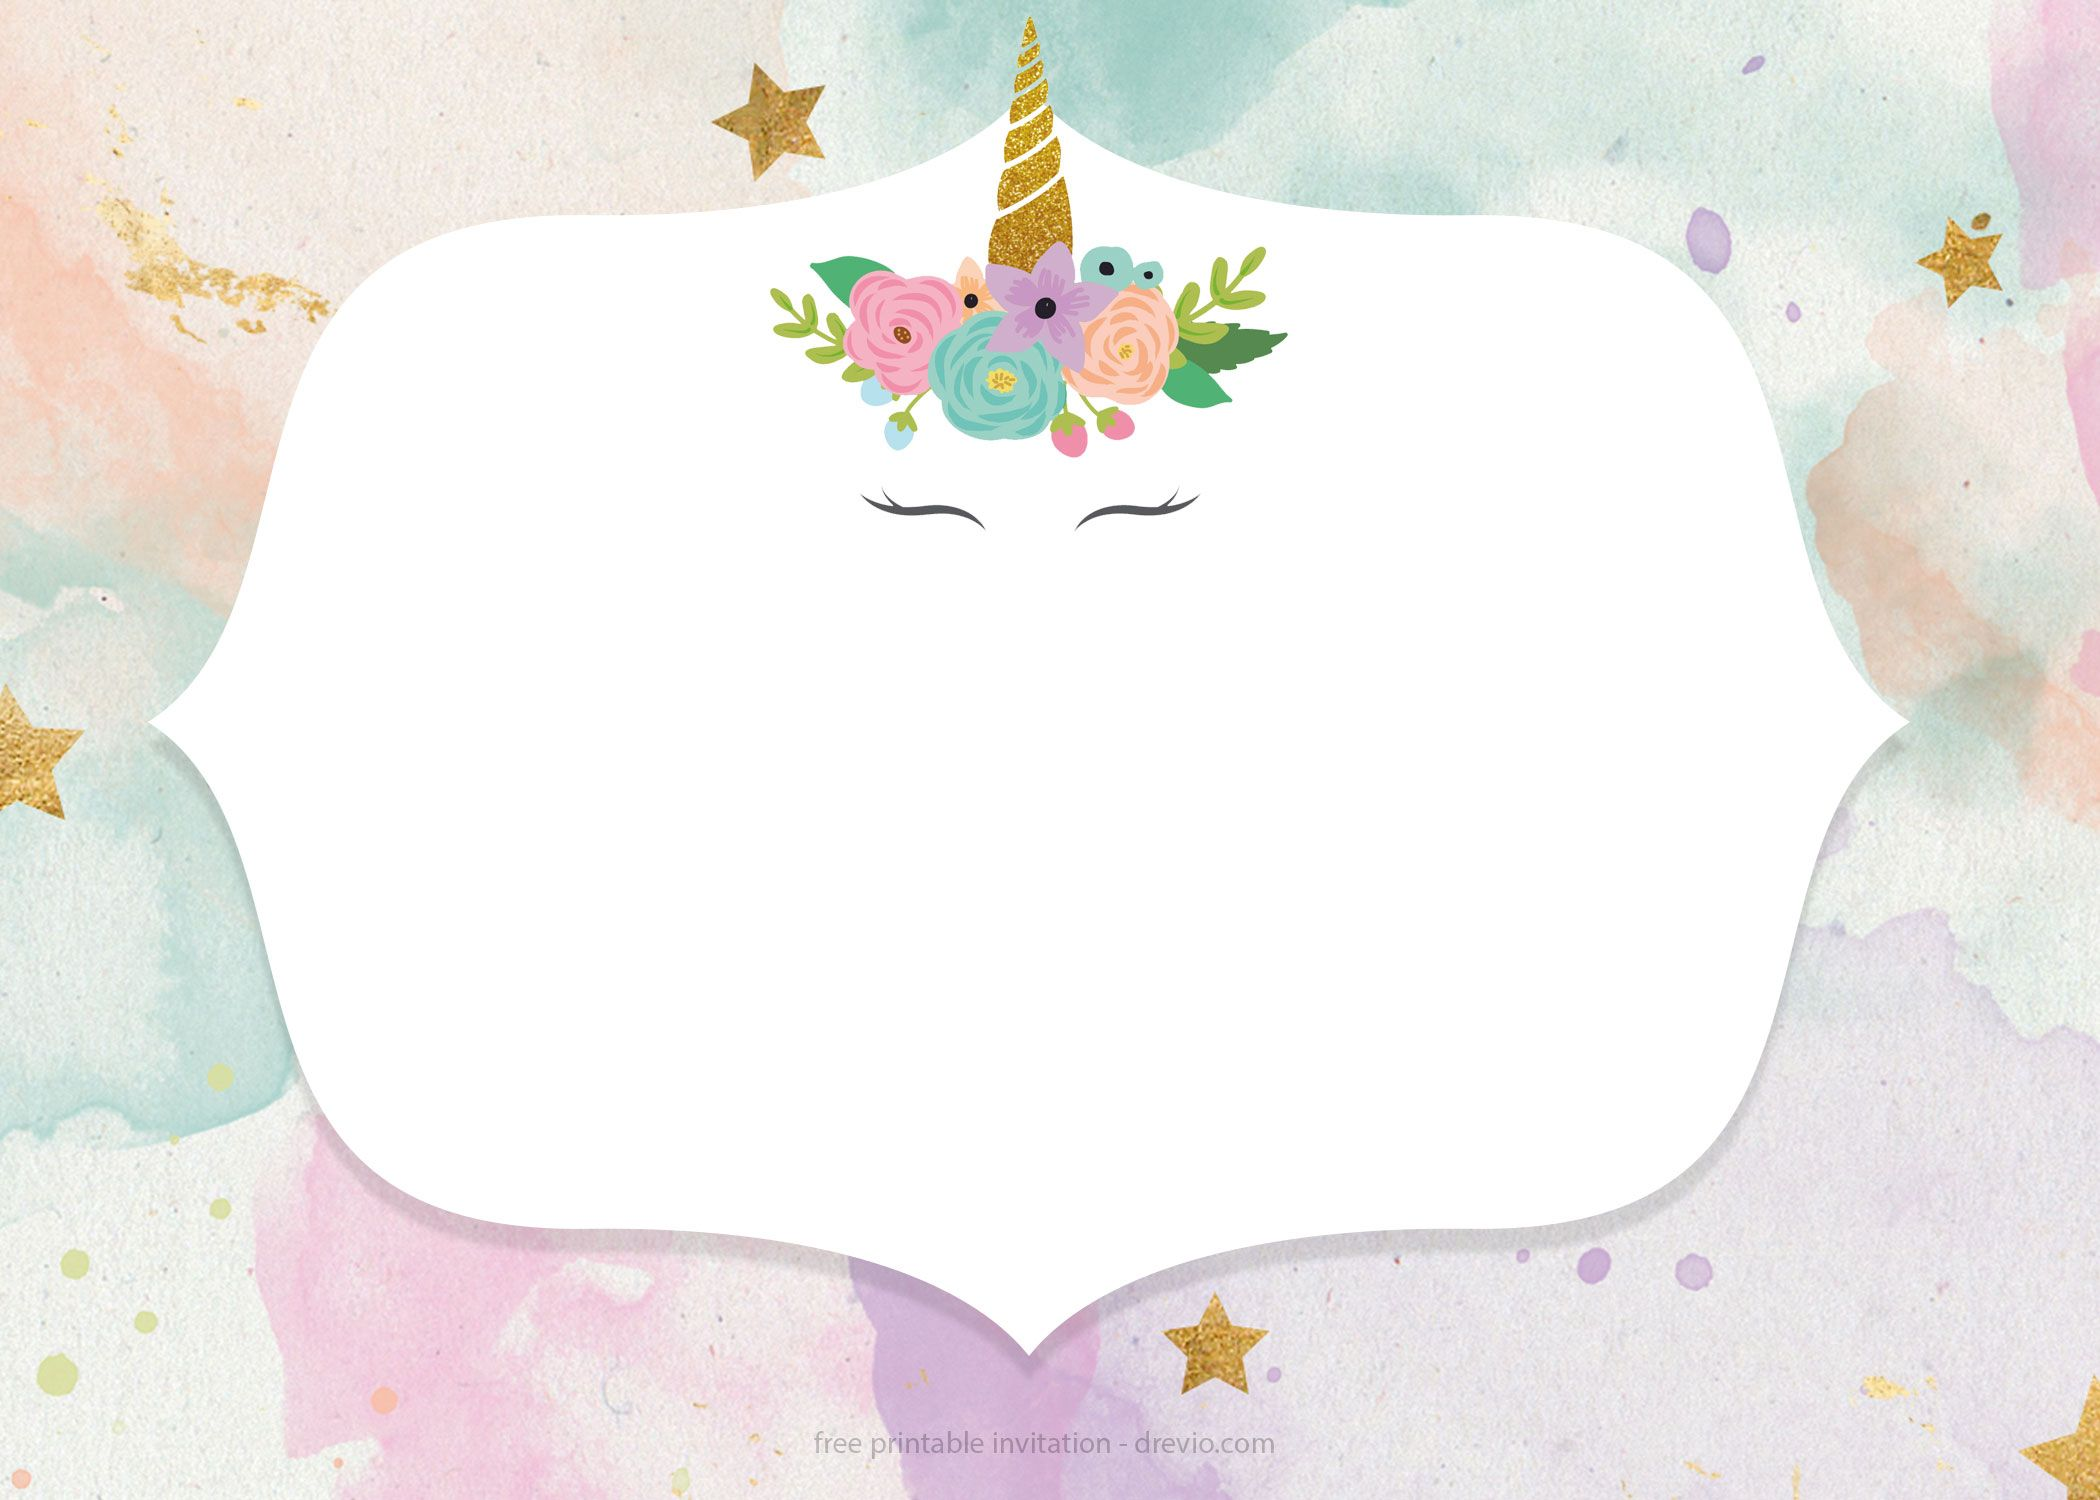 Free Whimsical Pastel Unicorn Birthday Invitation Templates Free